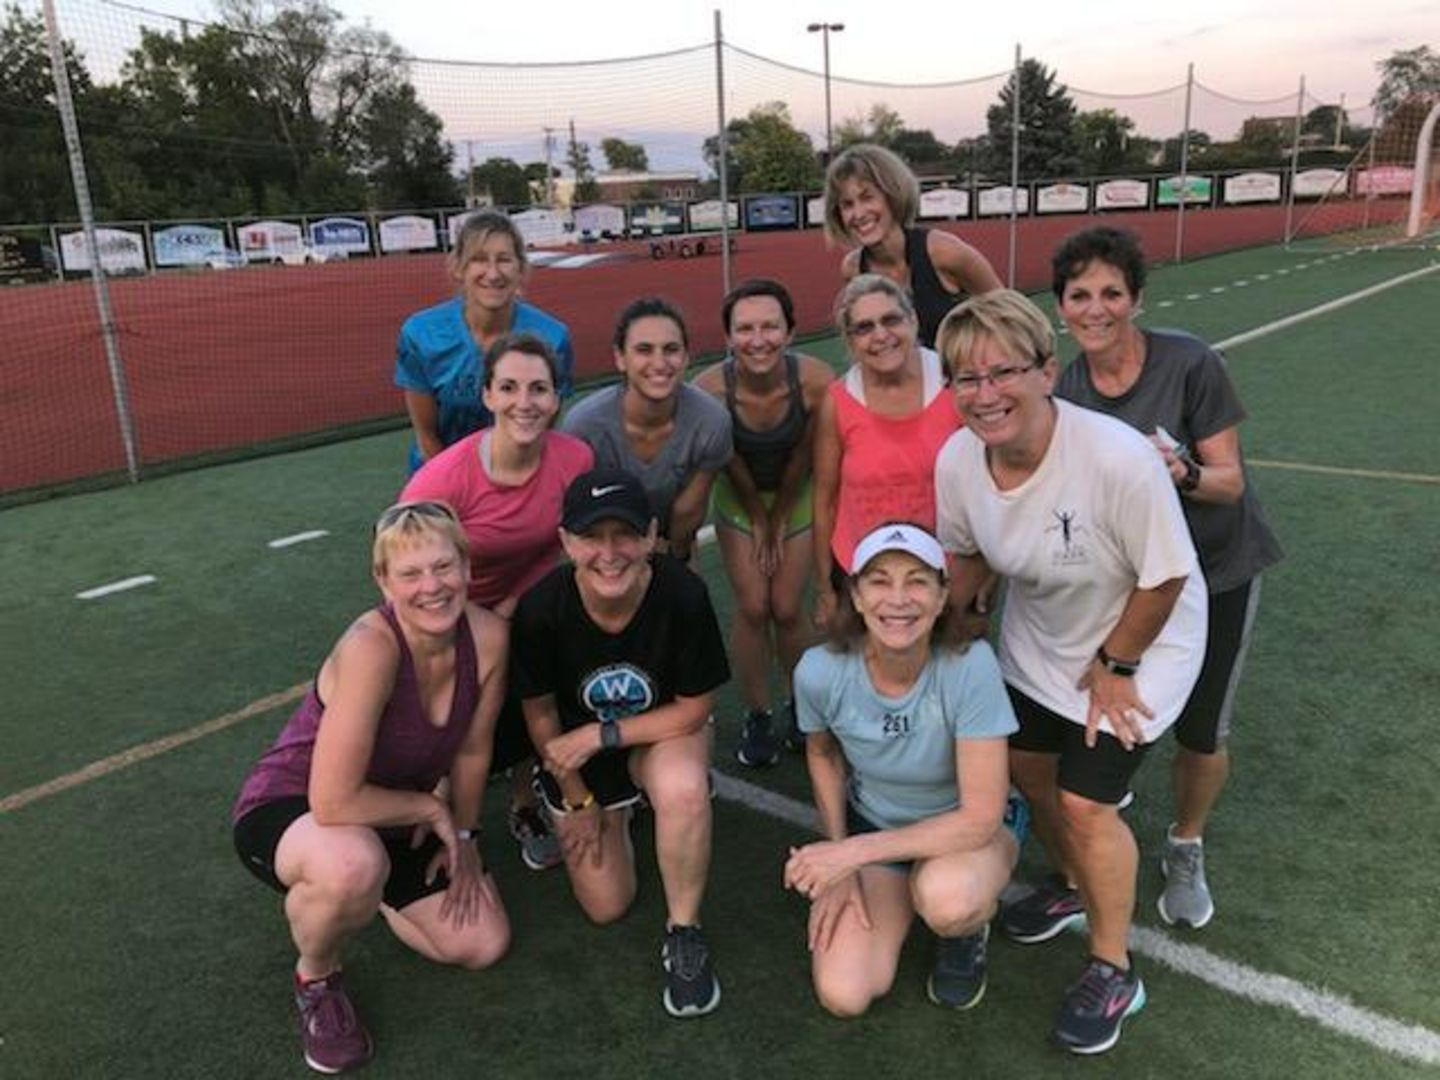 Women at workout - team picture - 261 Fearless